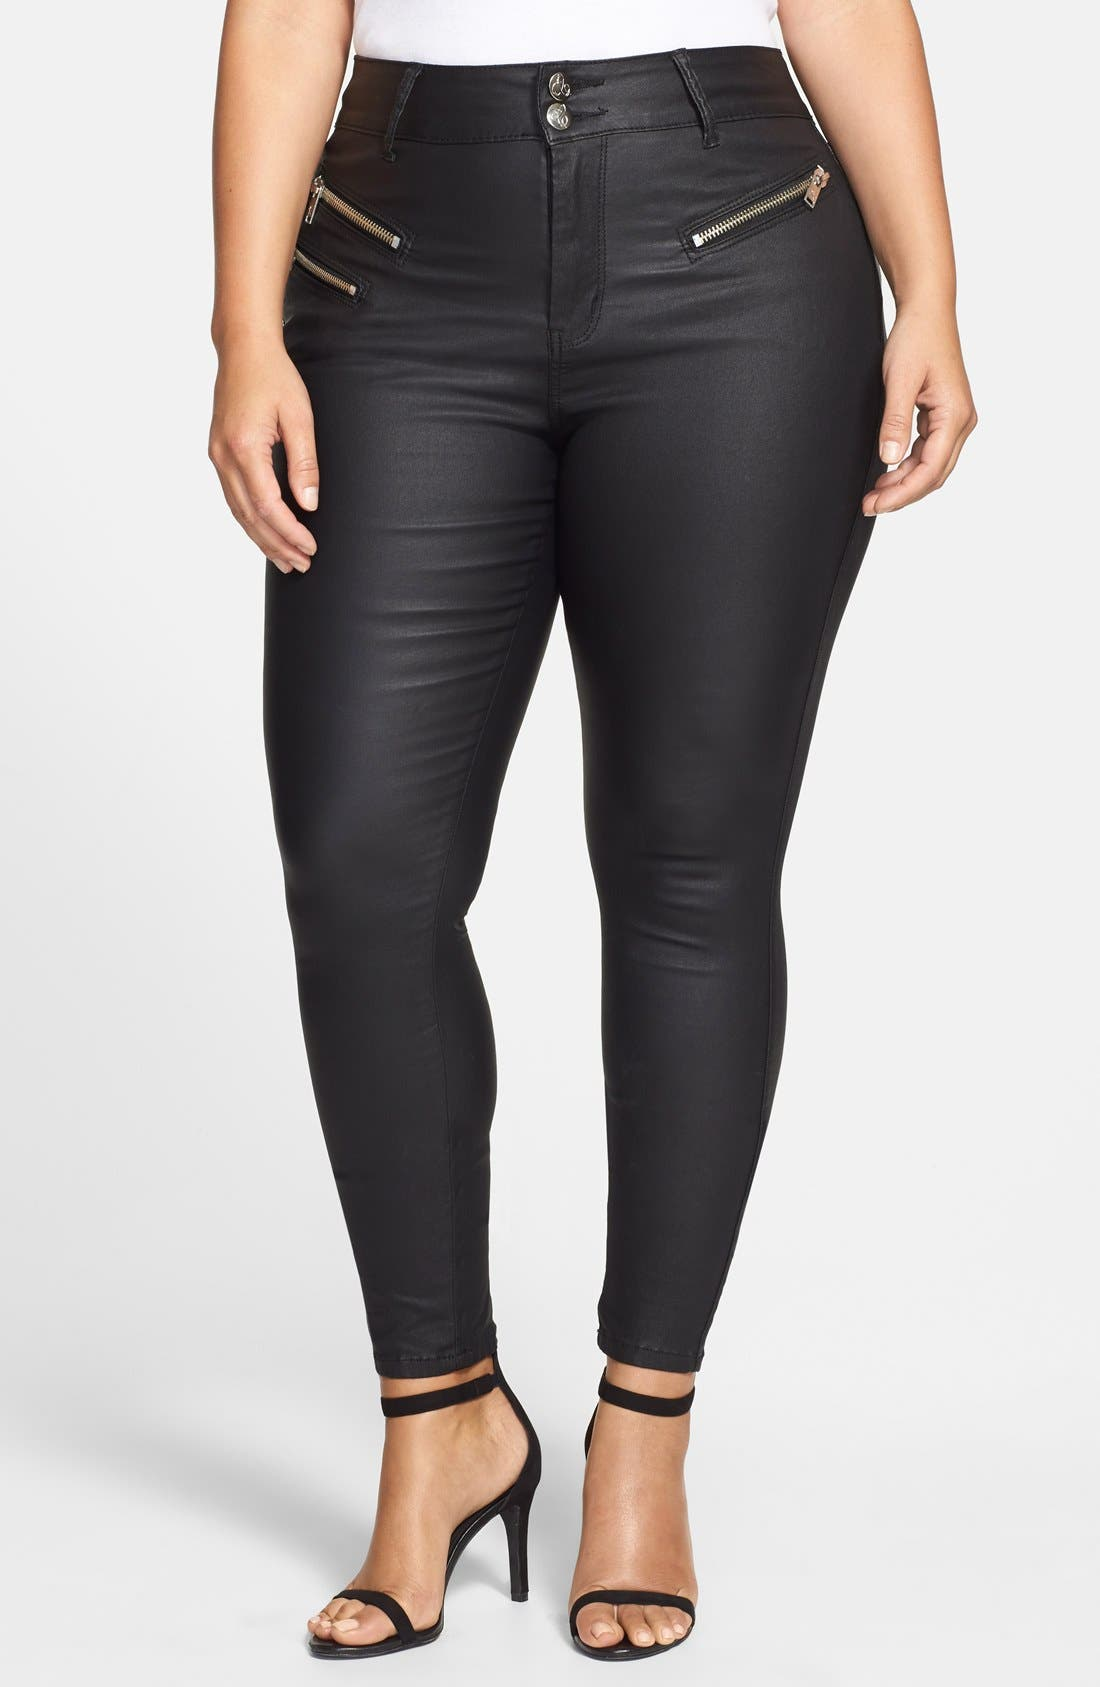 'Wet Look' Stretch Skinny Jeans,                         Main,                         color, Black